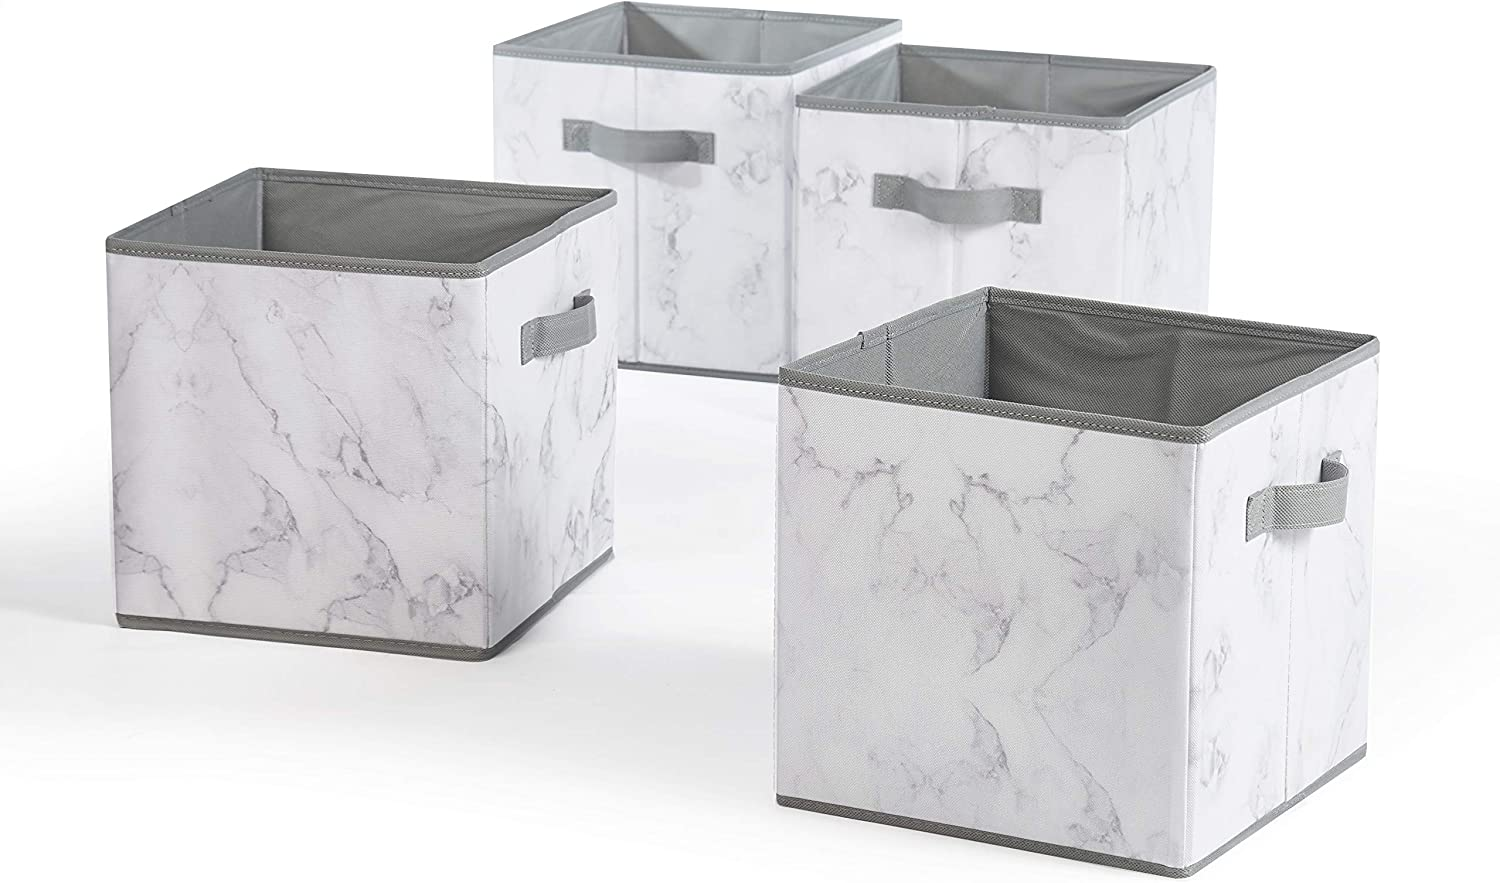 Urban Shop Marble Storage Cubes, Set of 4, Grey/White